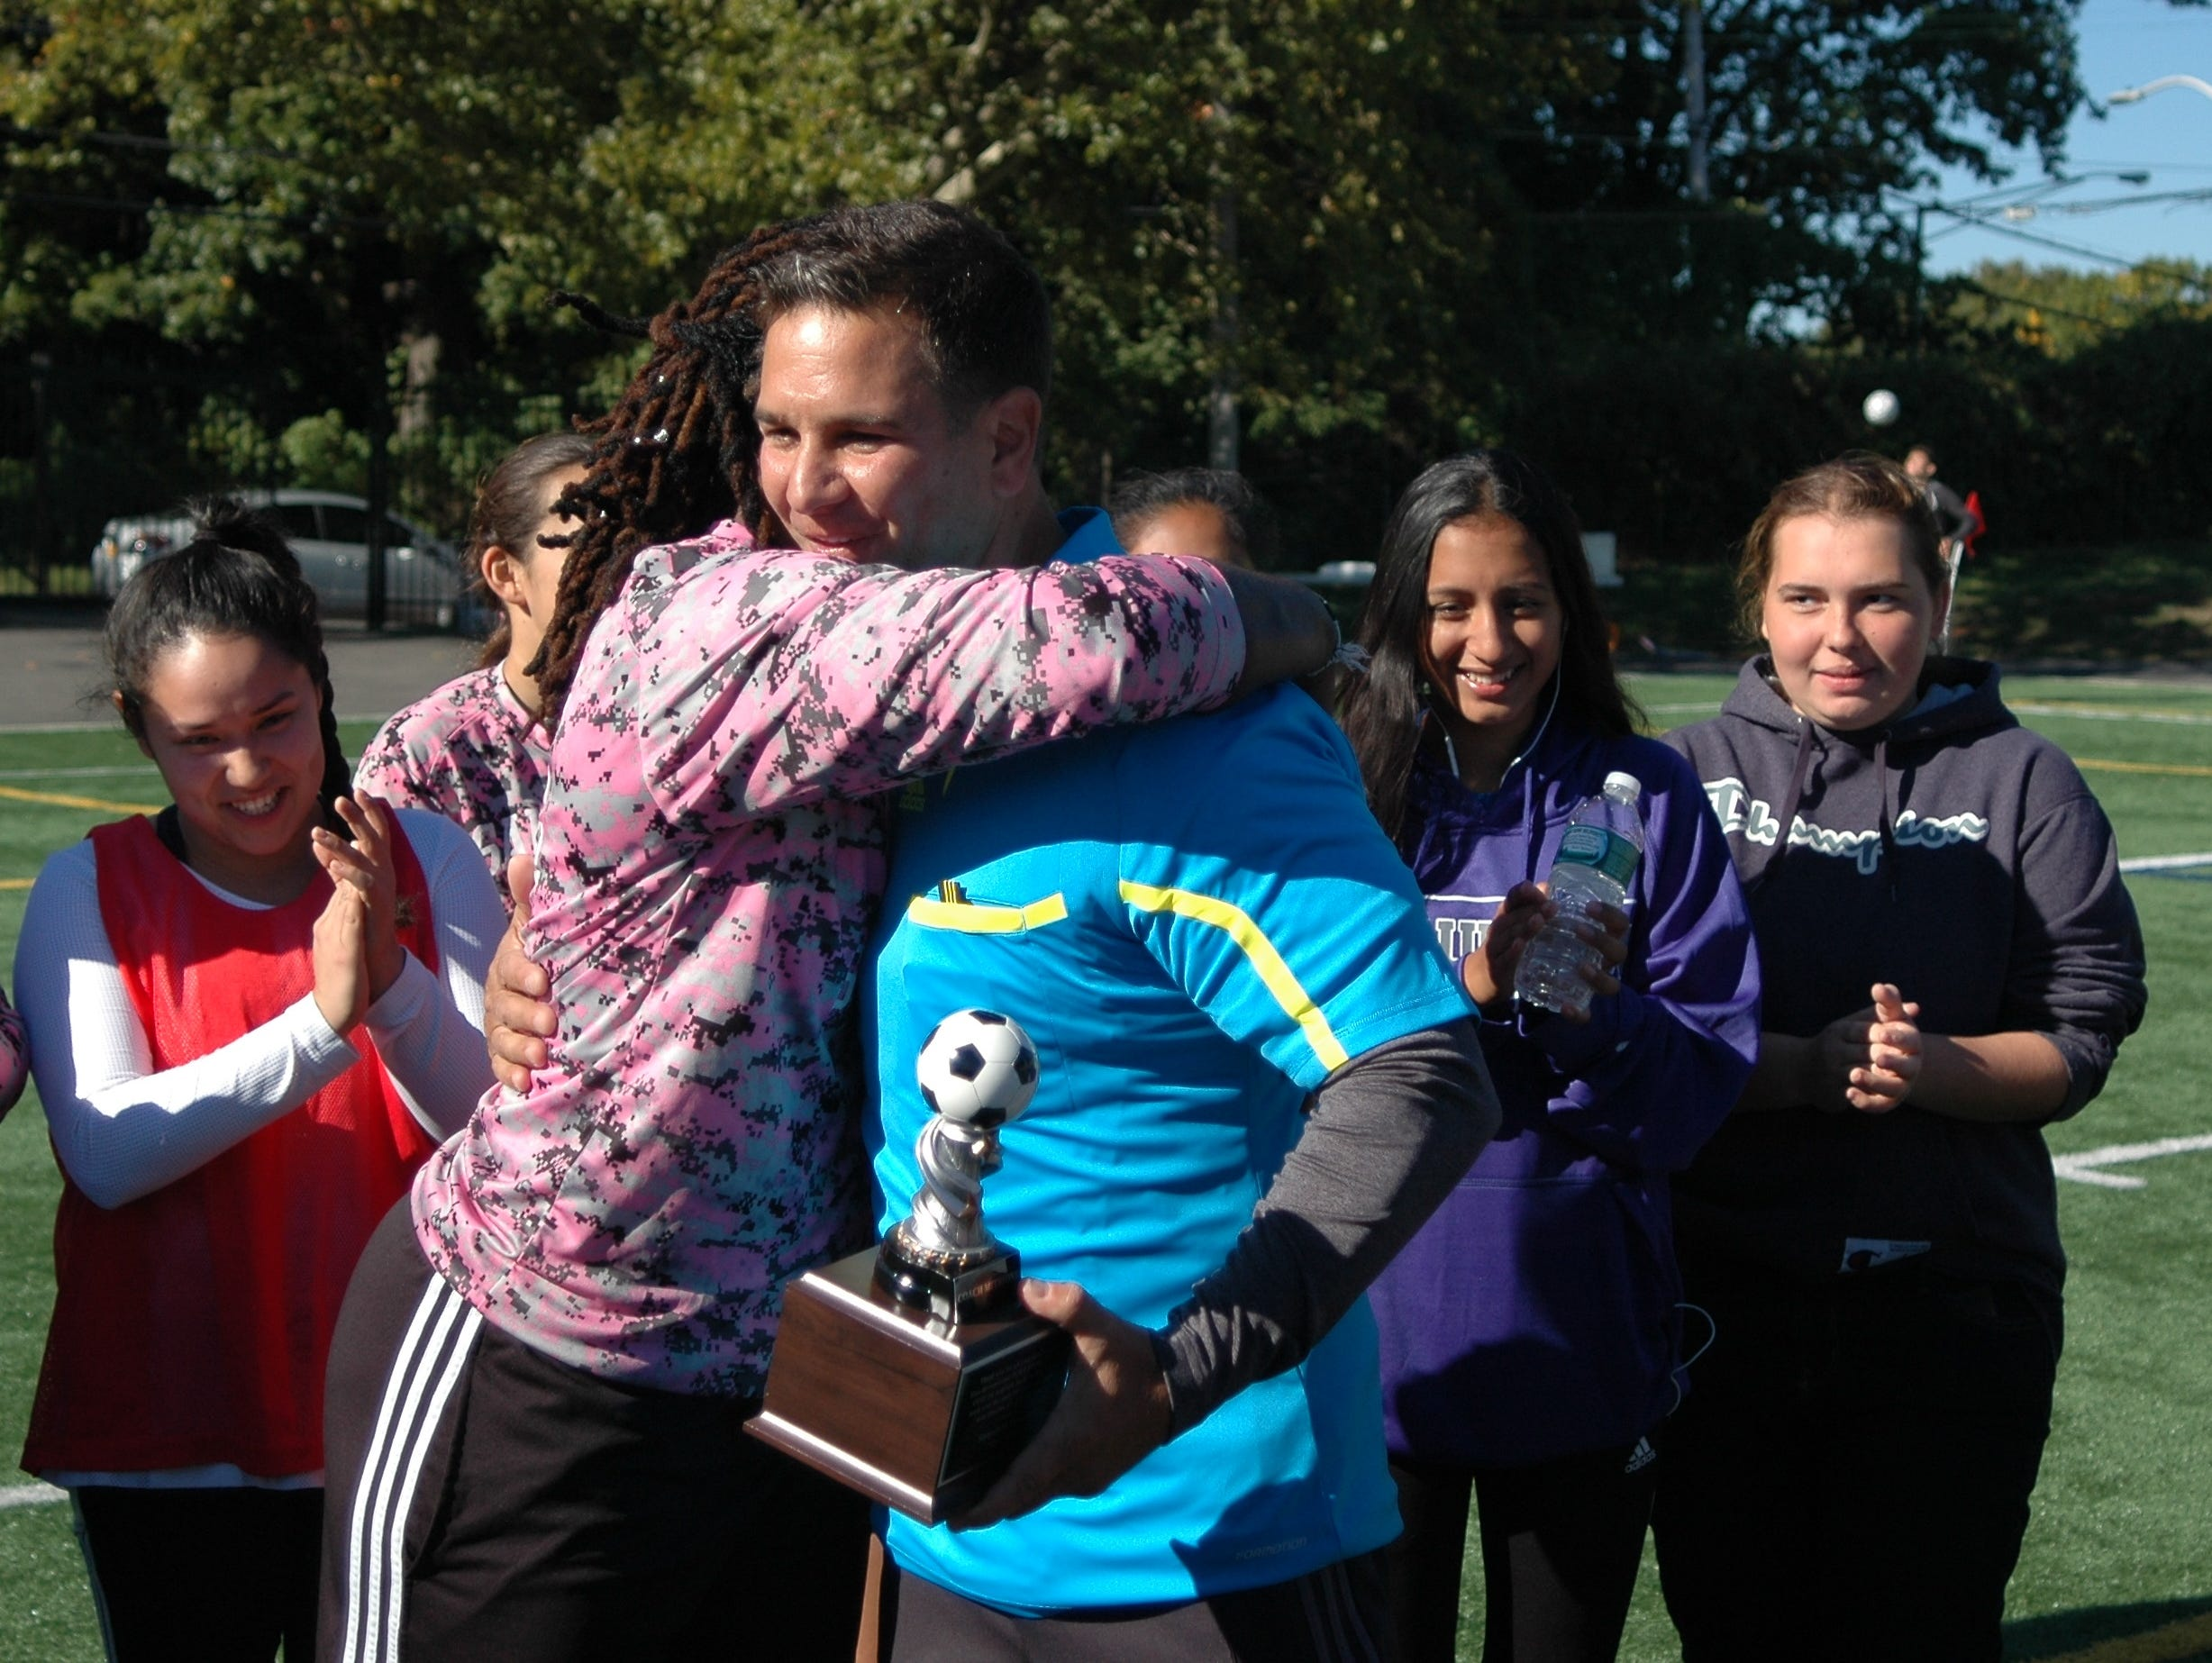 Saunders girls soccer head coach Carlo Mitrione receives a hug from former player Delmara Reece after being honored during the school's alumni game on Saturday, October 10, 2015. Mitrione, who has coached both boys and girls soccer at the school for 19 years, will be retiring from coaching at the end of the season.